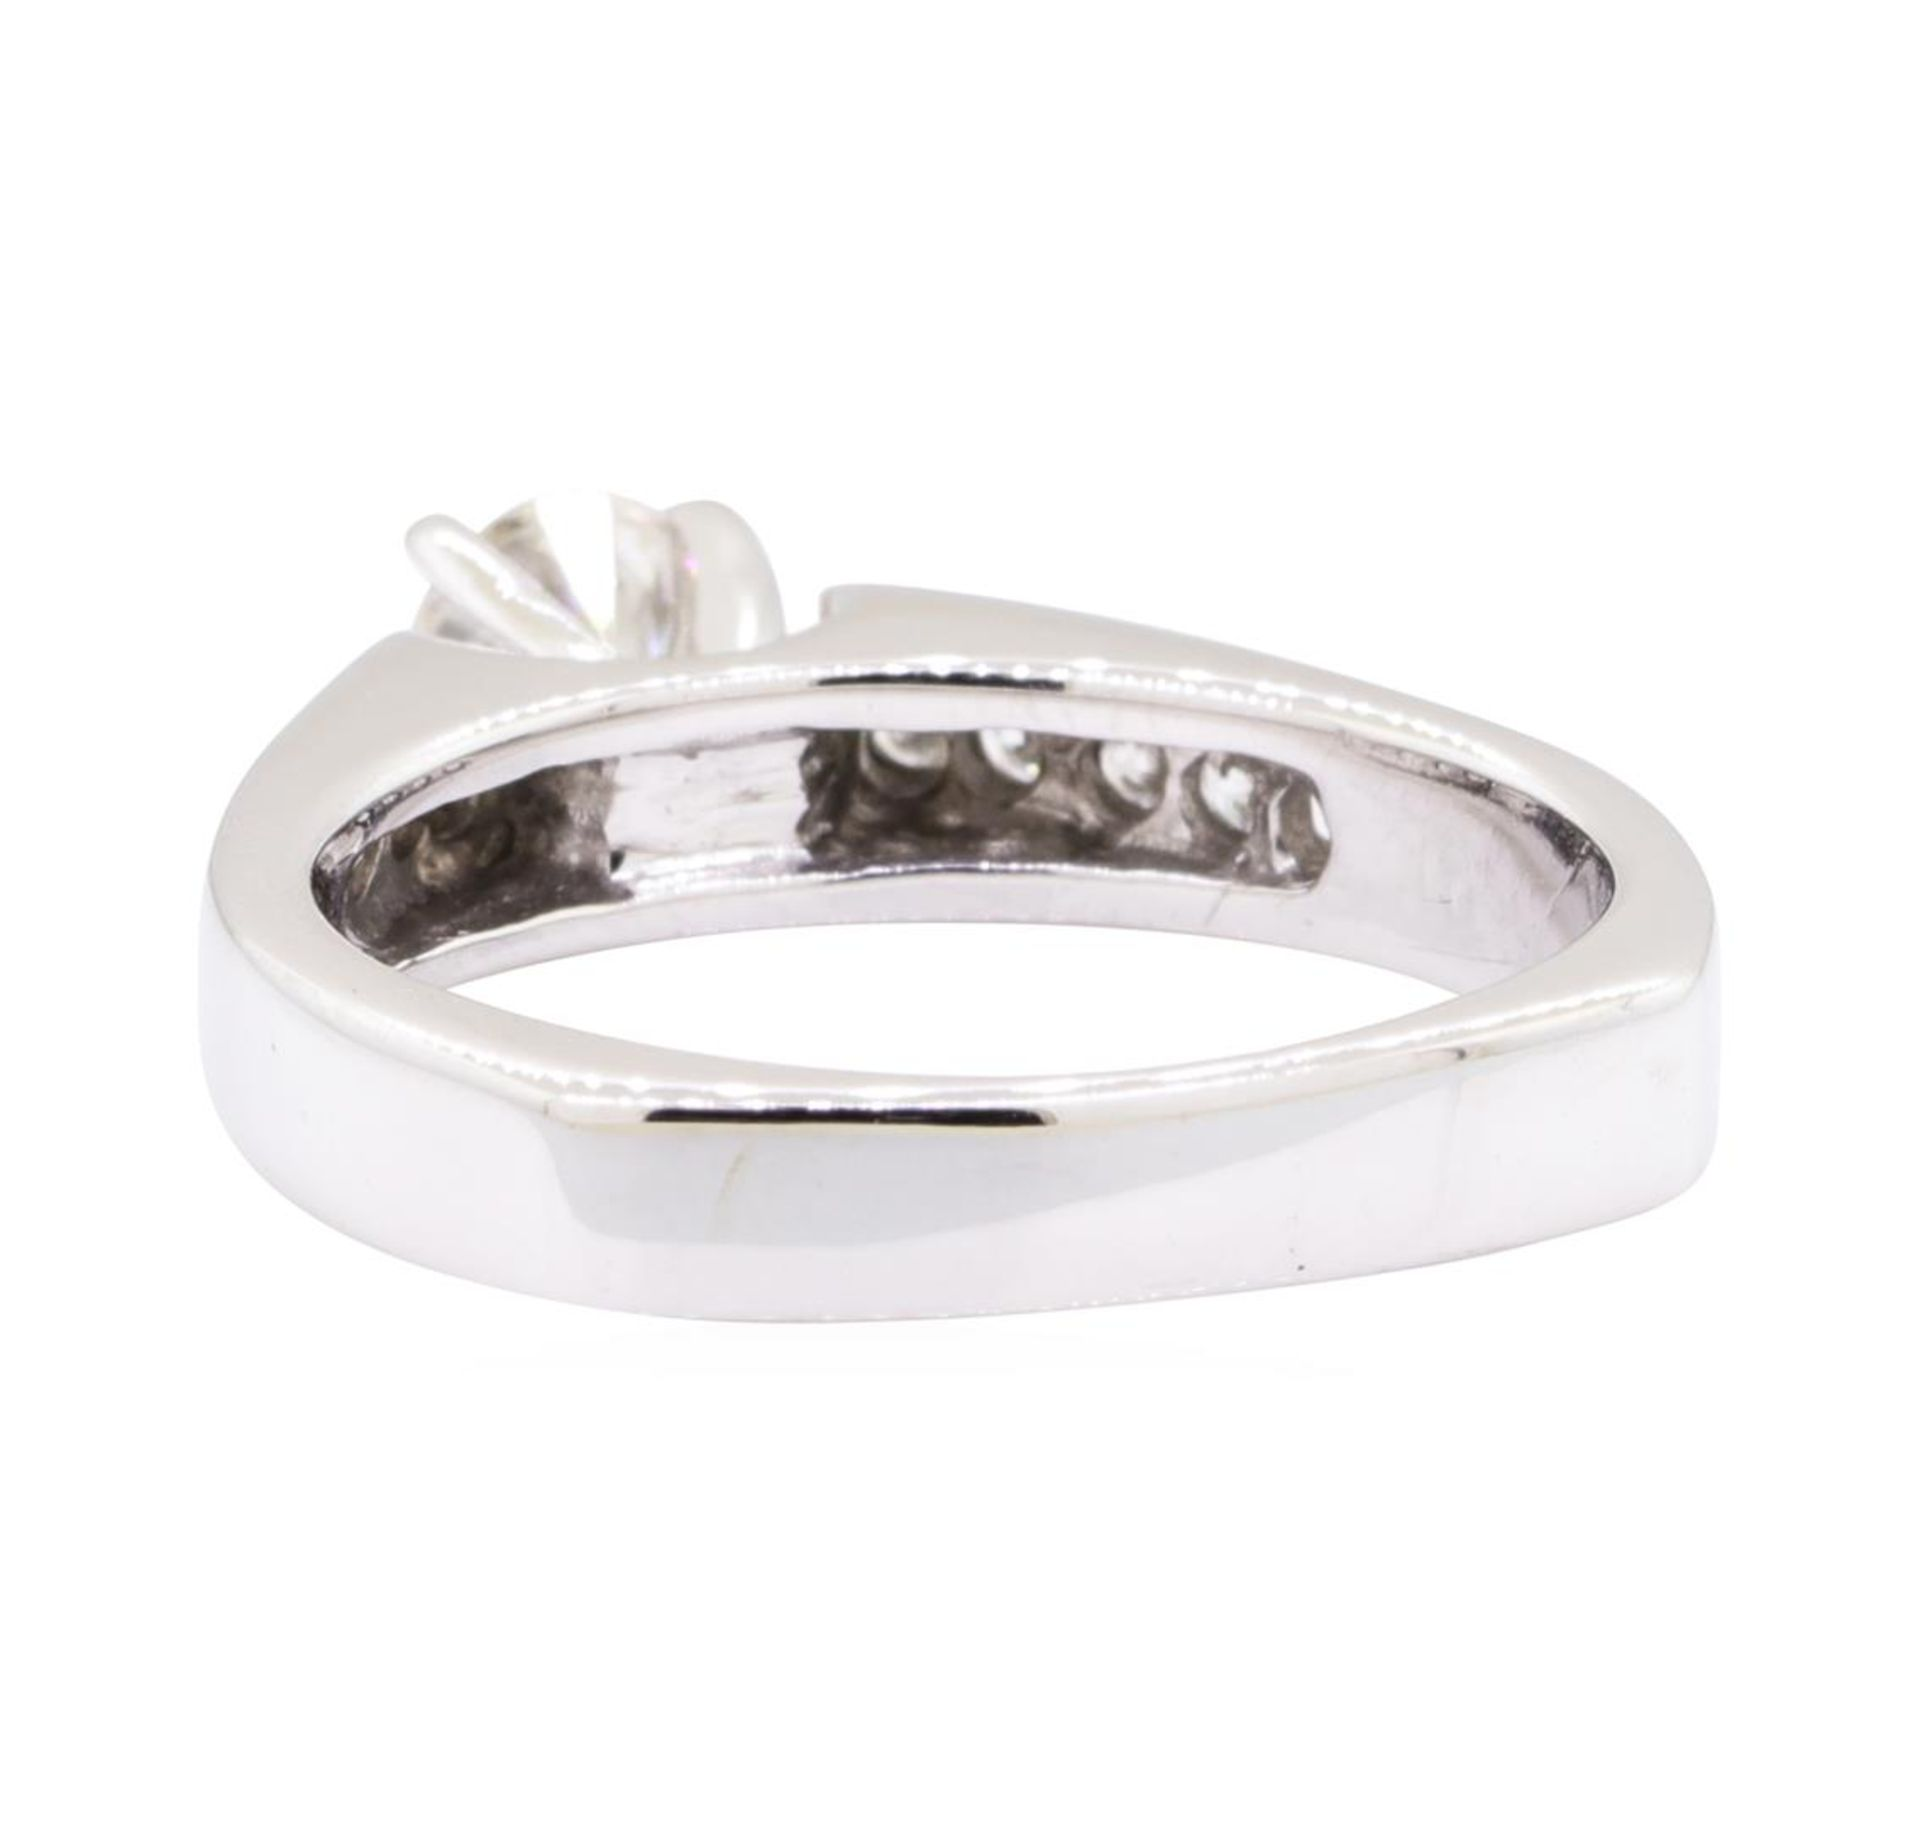 0.80 ctw Diamond Wedding Ring with a Euro Shank - 14KT White Gold - Image 3 of 4